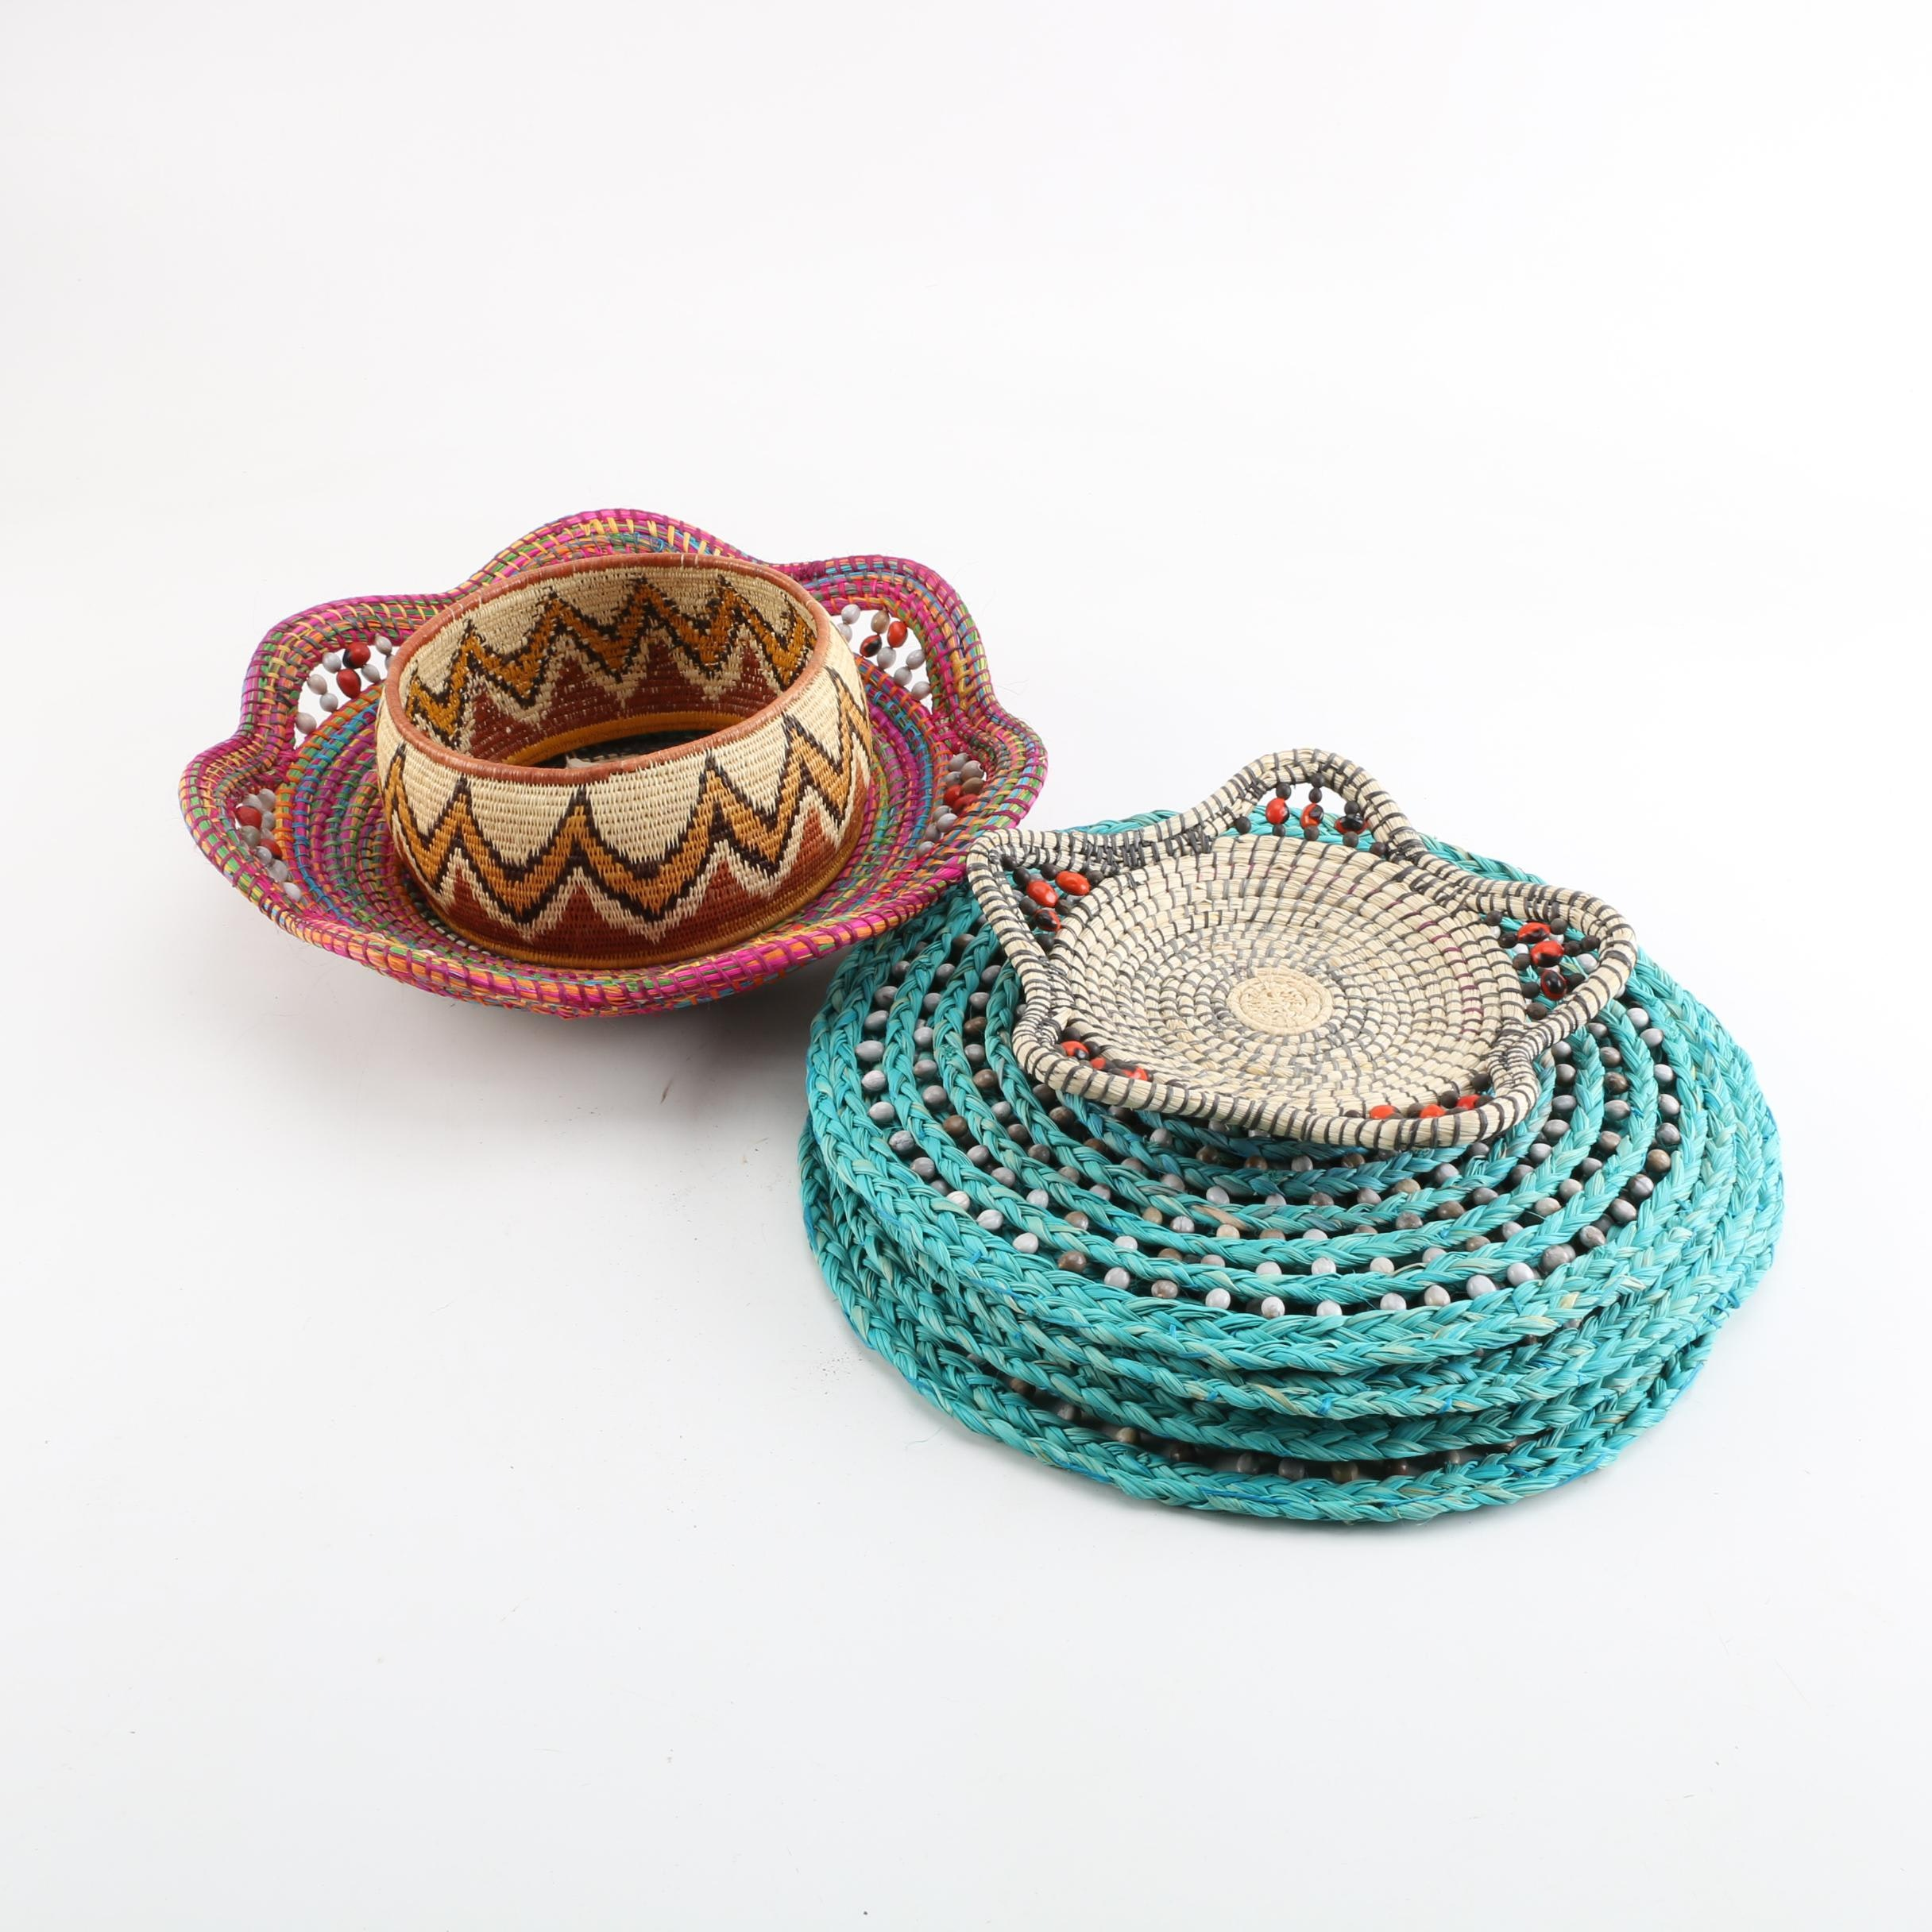 Colorful Woven Bowls and Placemats with Wooden Bead Accents, and Pedestal Base